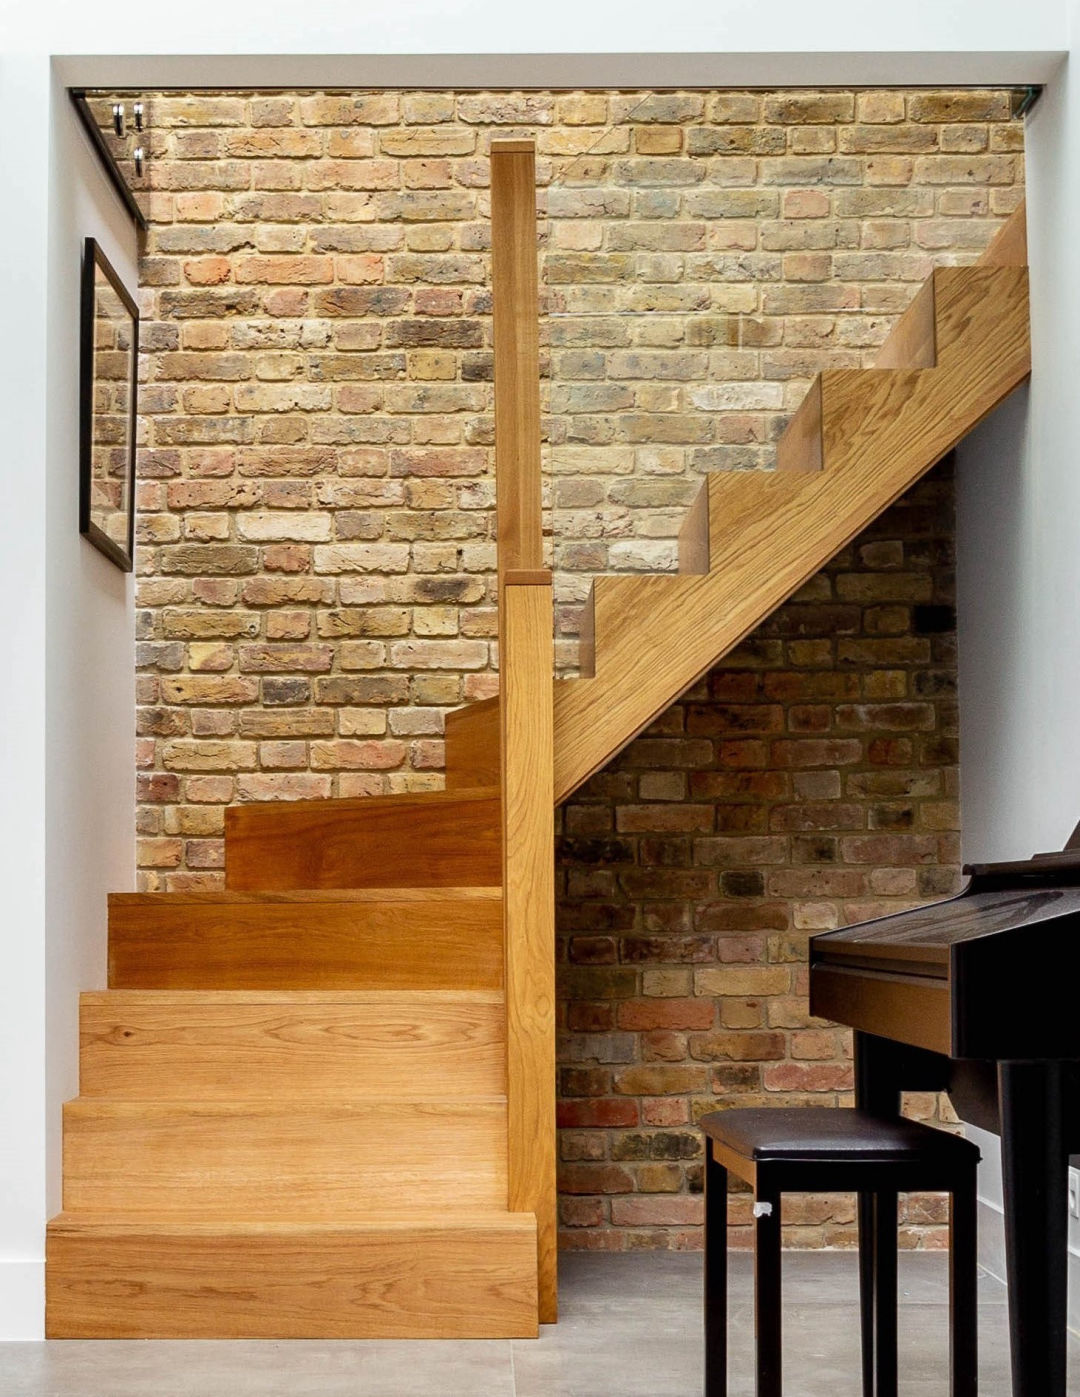 Bespoke fitted wooden staircase built by an experienced North London joiner